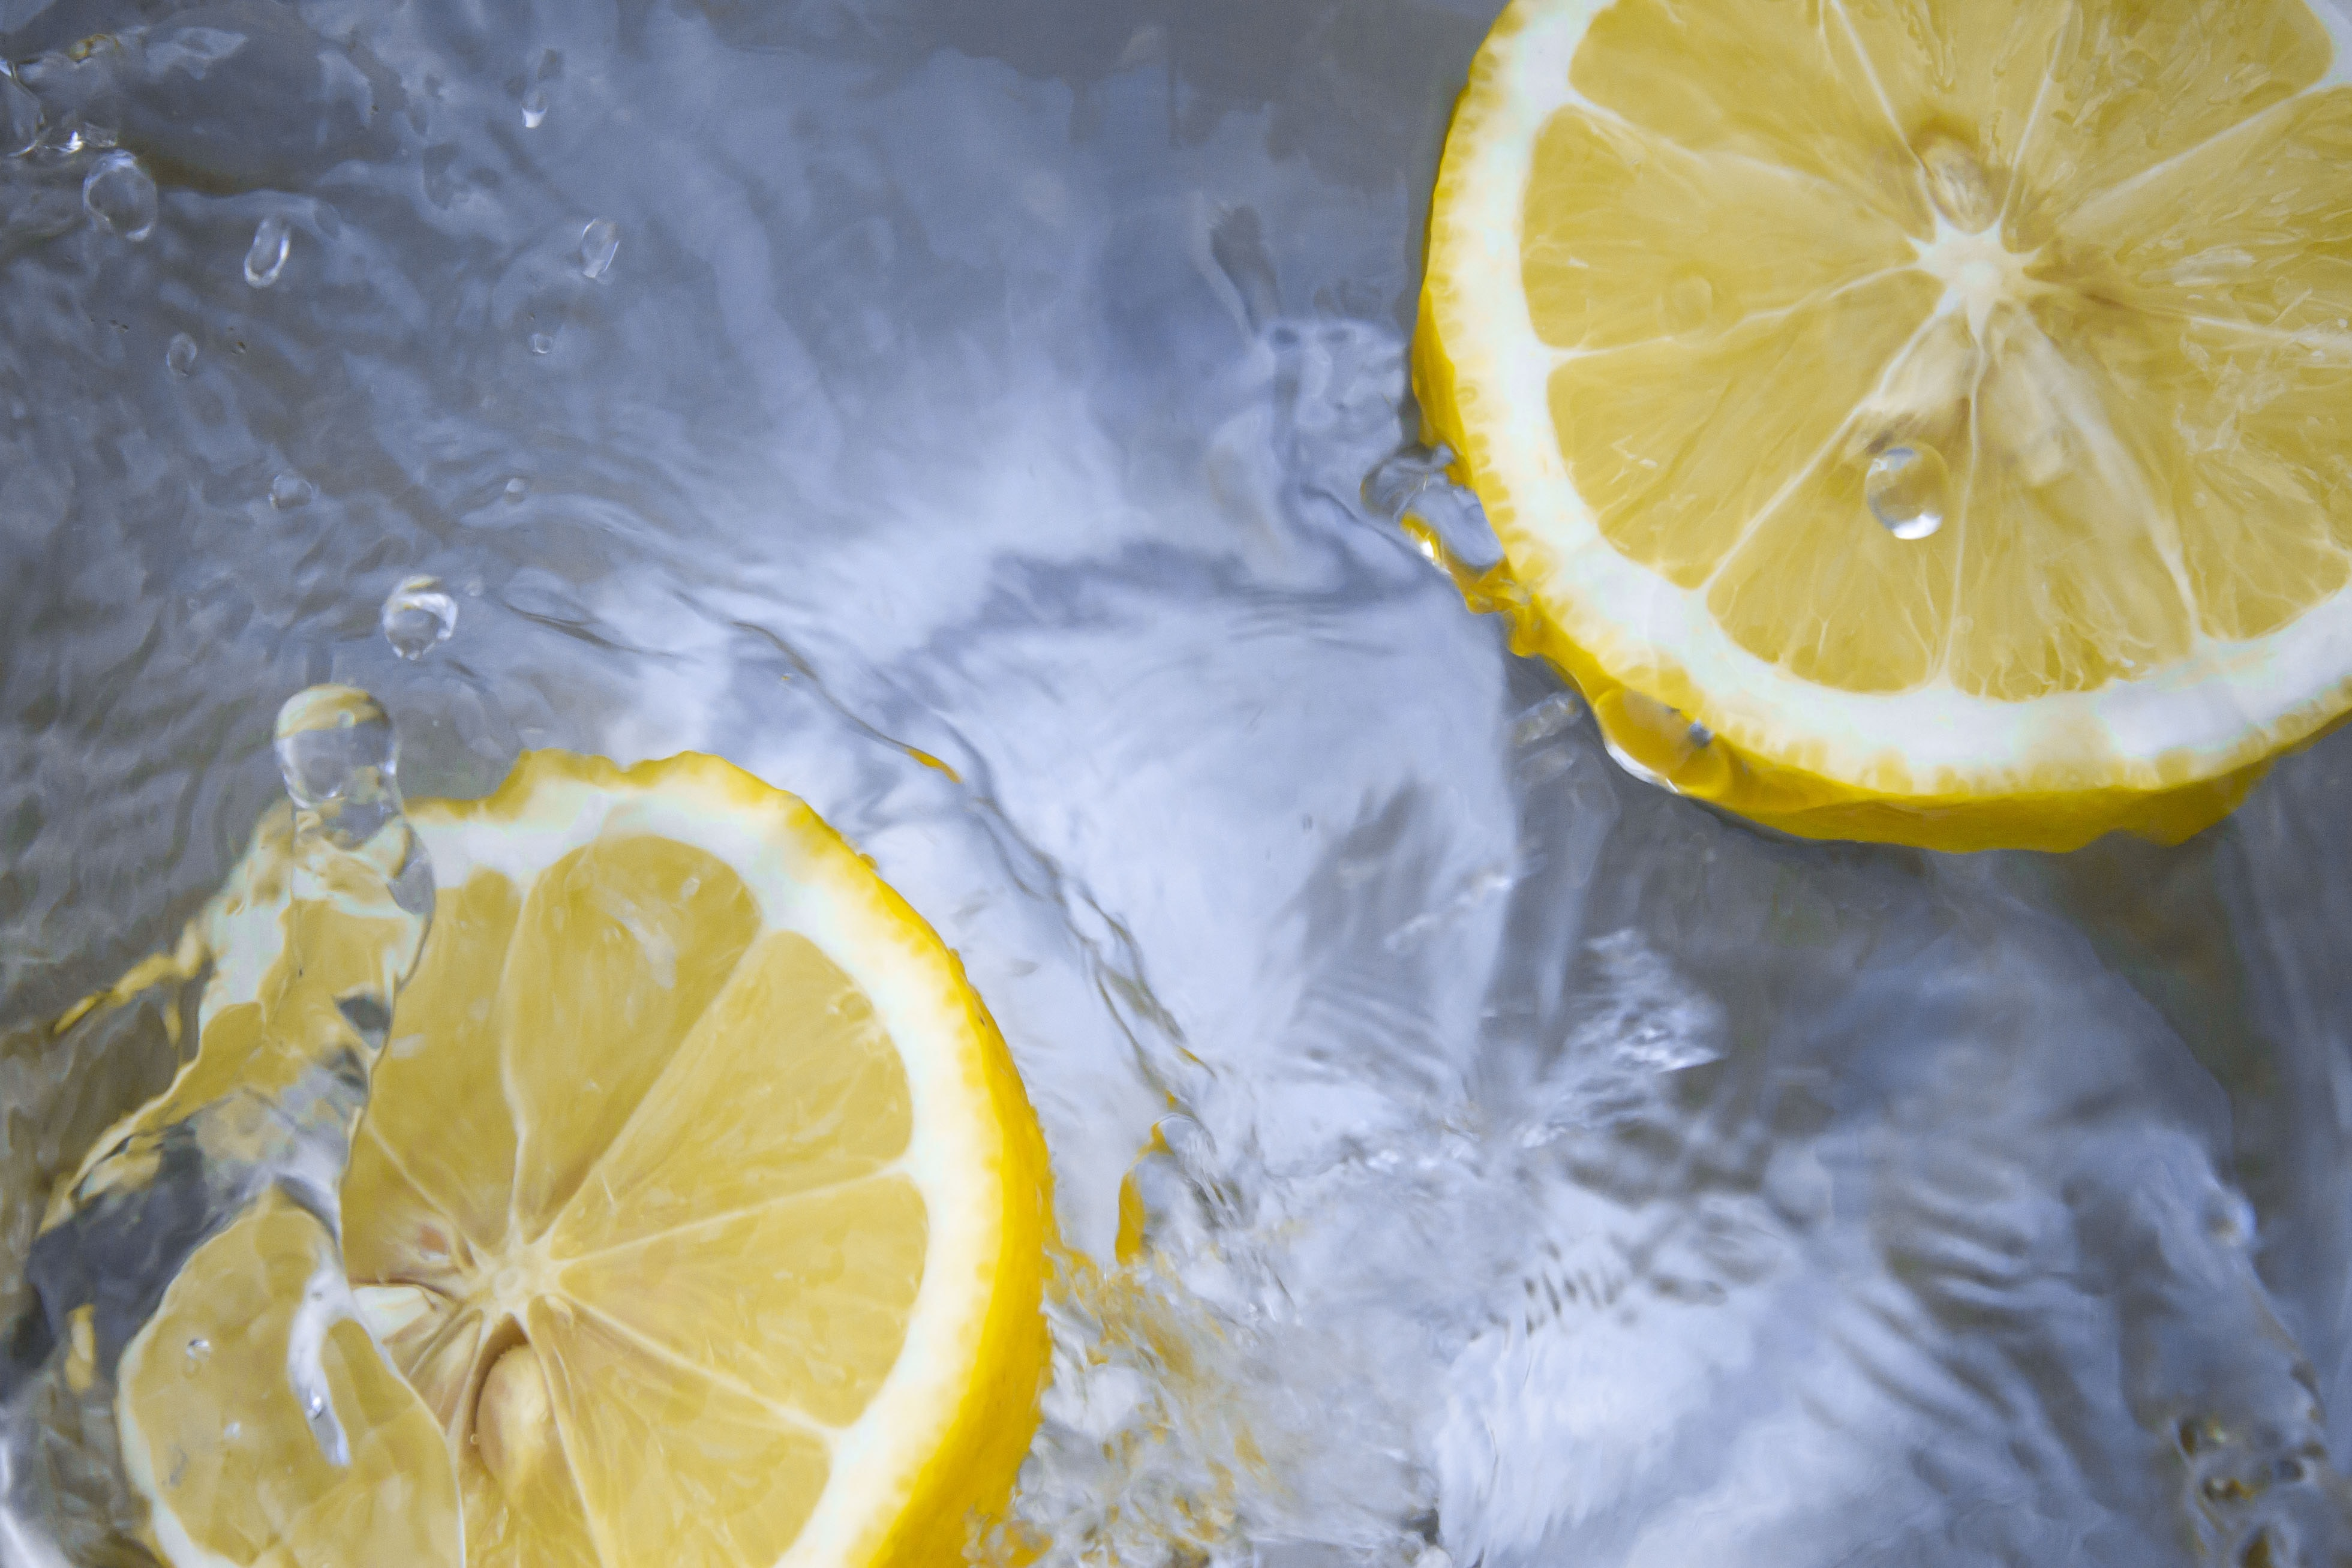 Lemons floating in water